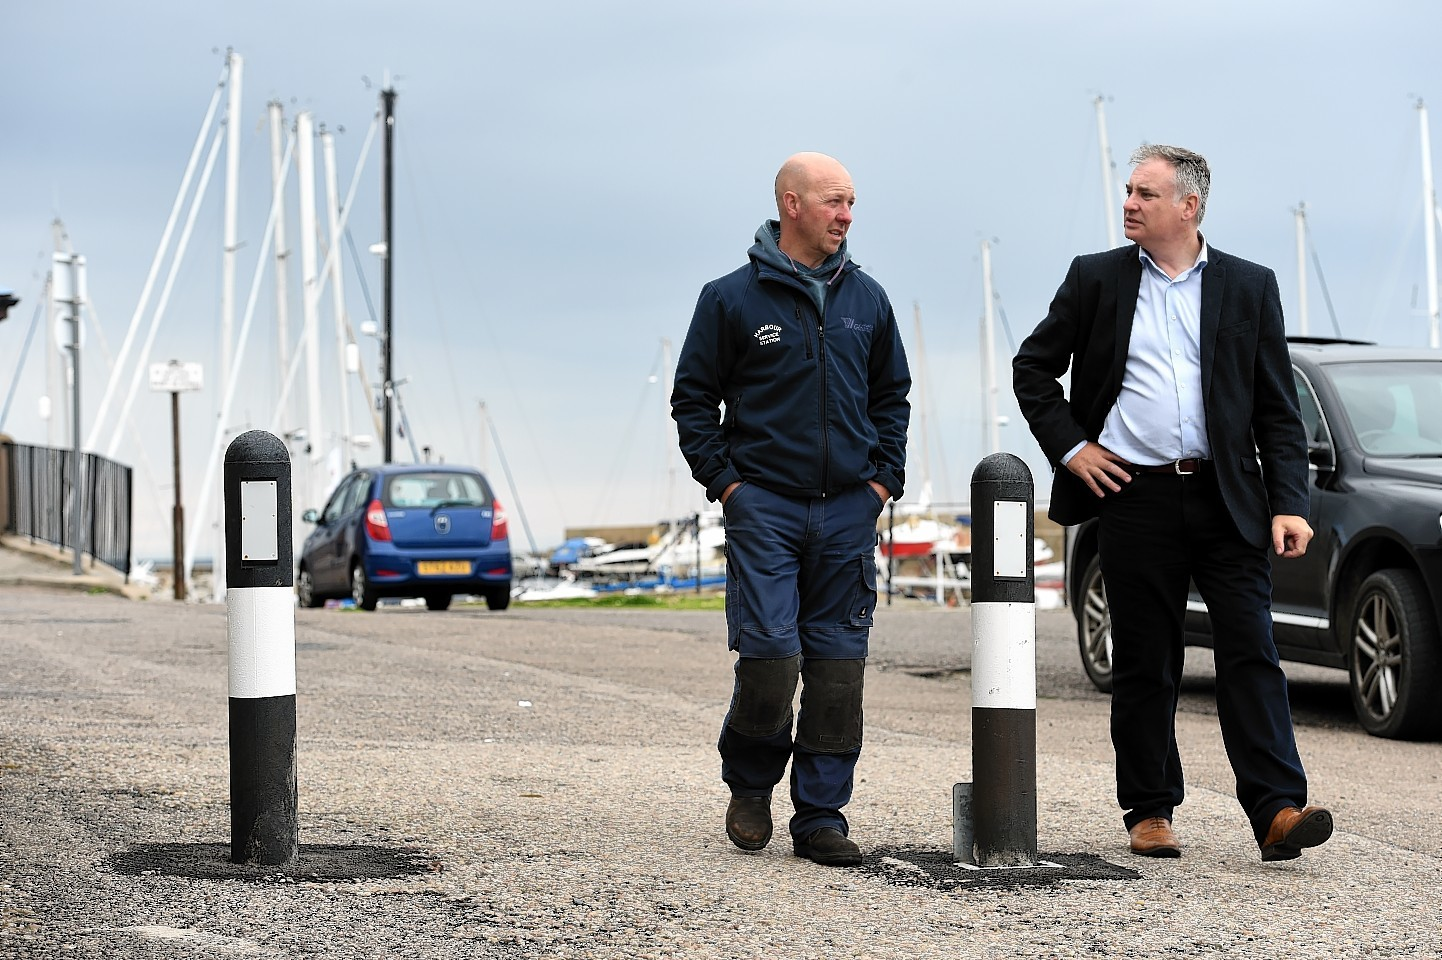 Lossiemouth garage owner, John Thomson, left, with Richard Lochhead, MSP, Picture by Gordon Lennox